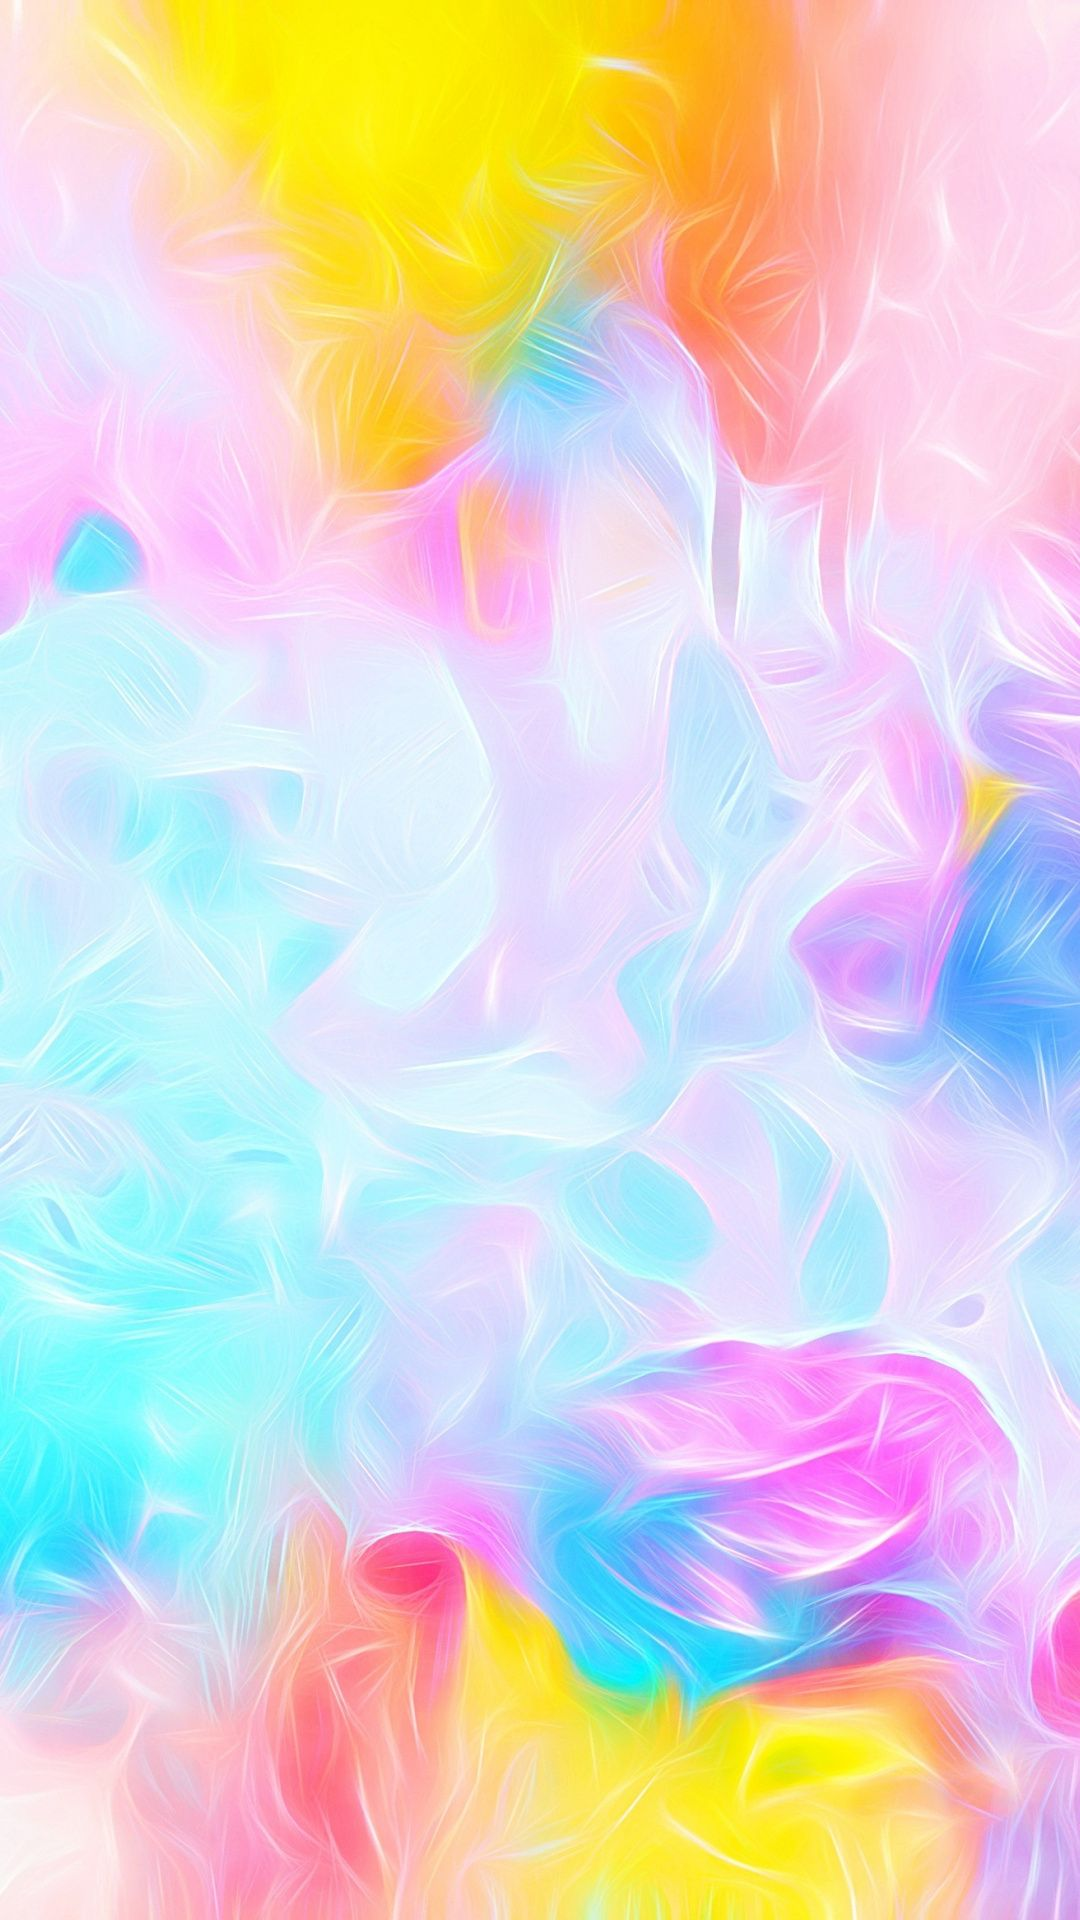 Pin On Abstract Digital Art Wallpapers